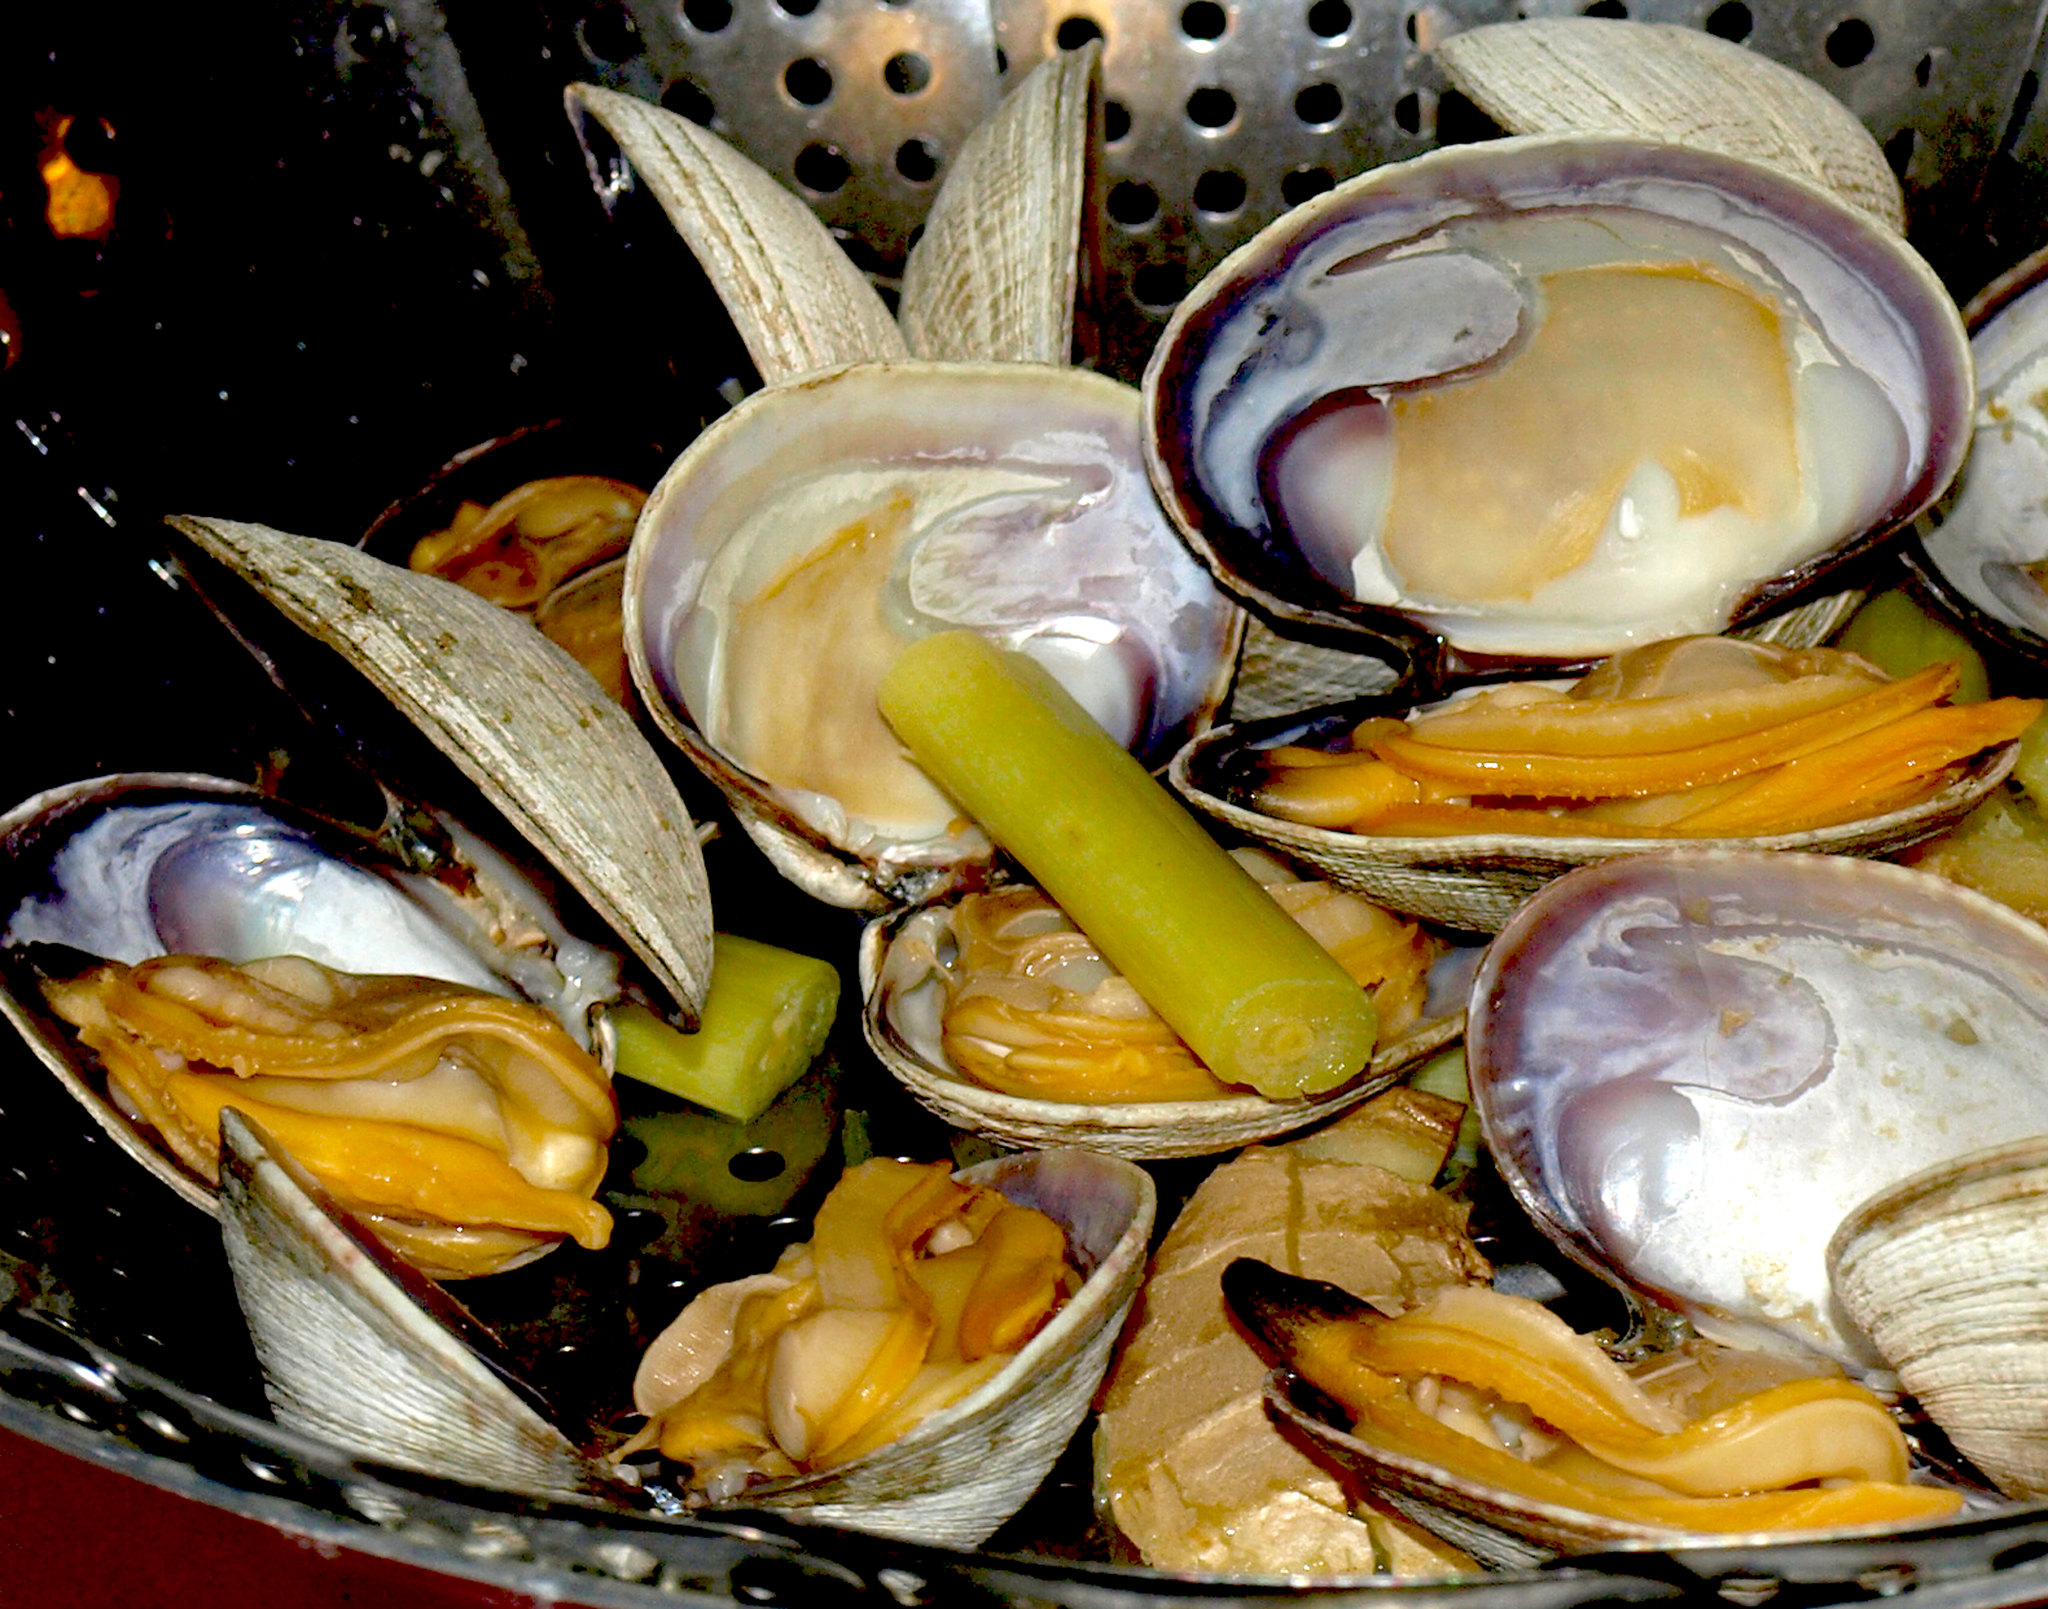 Steamer Clams - photo by Nha Le Hoan under CC BY 2.0